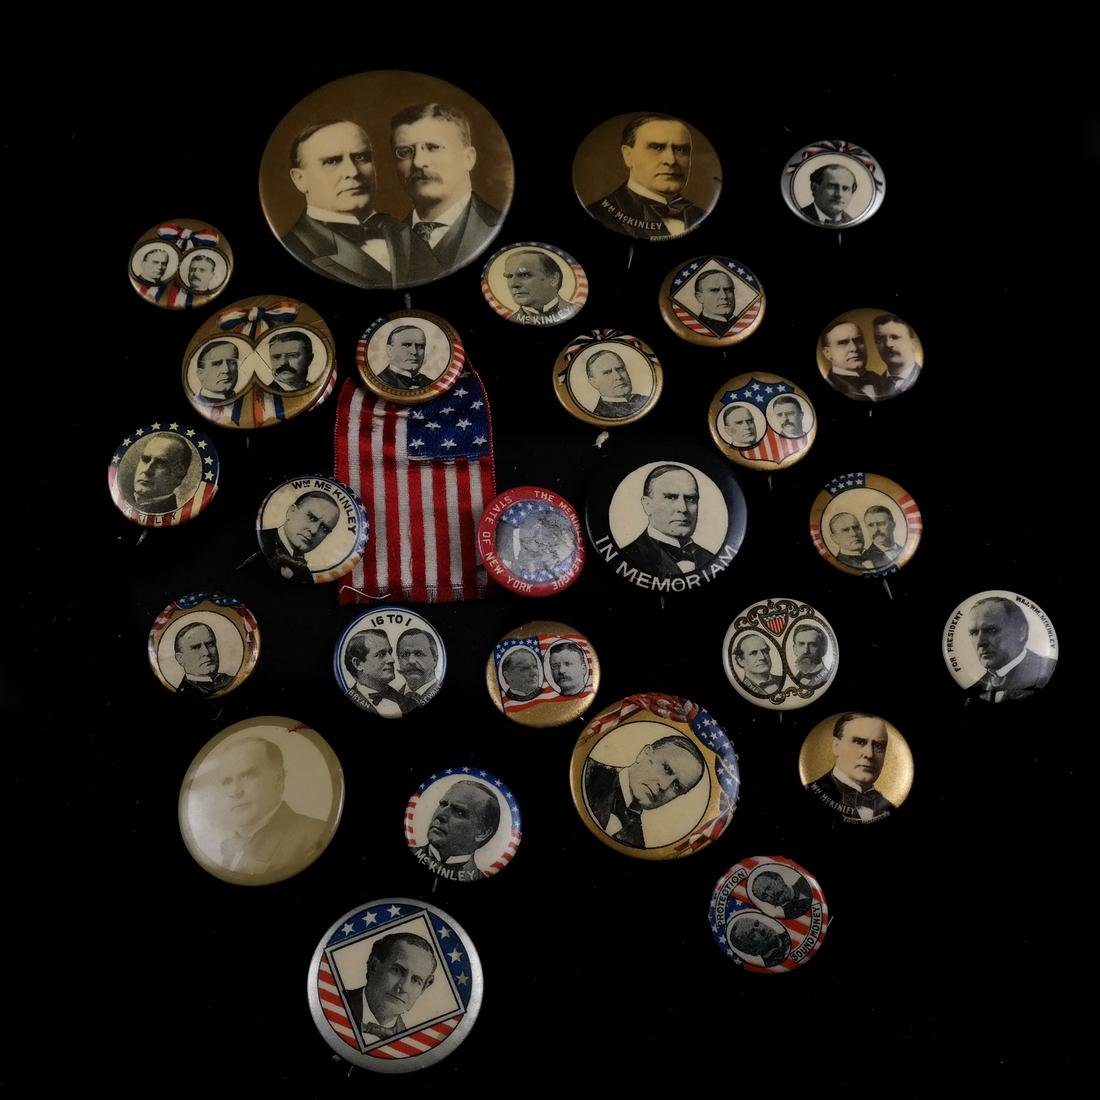 GROUP OF 1896 CAMPAIGN BUTTONS